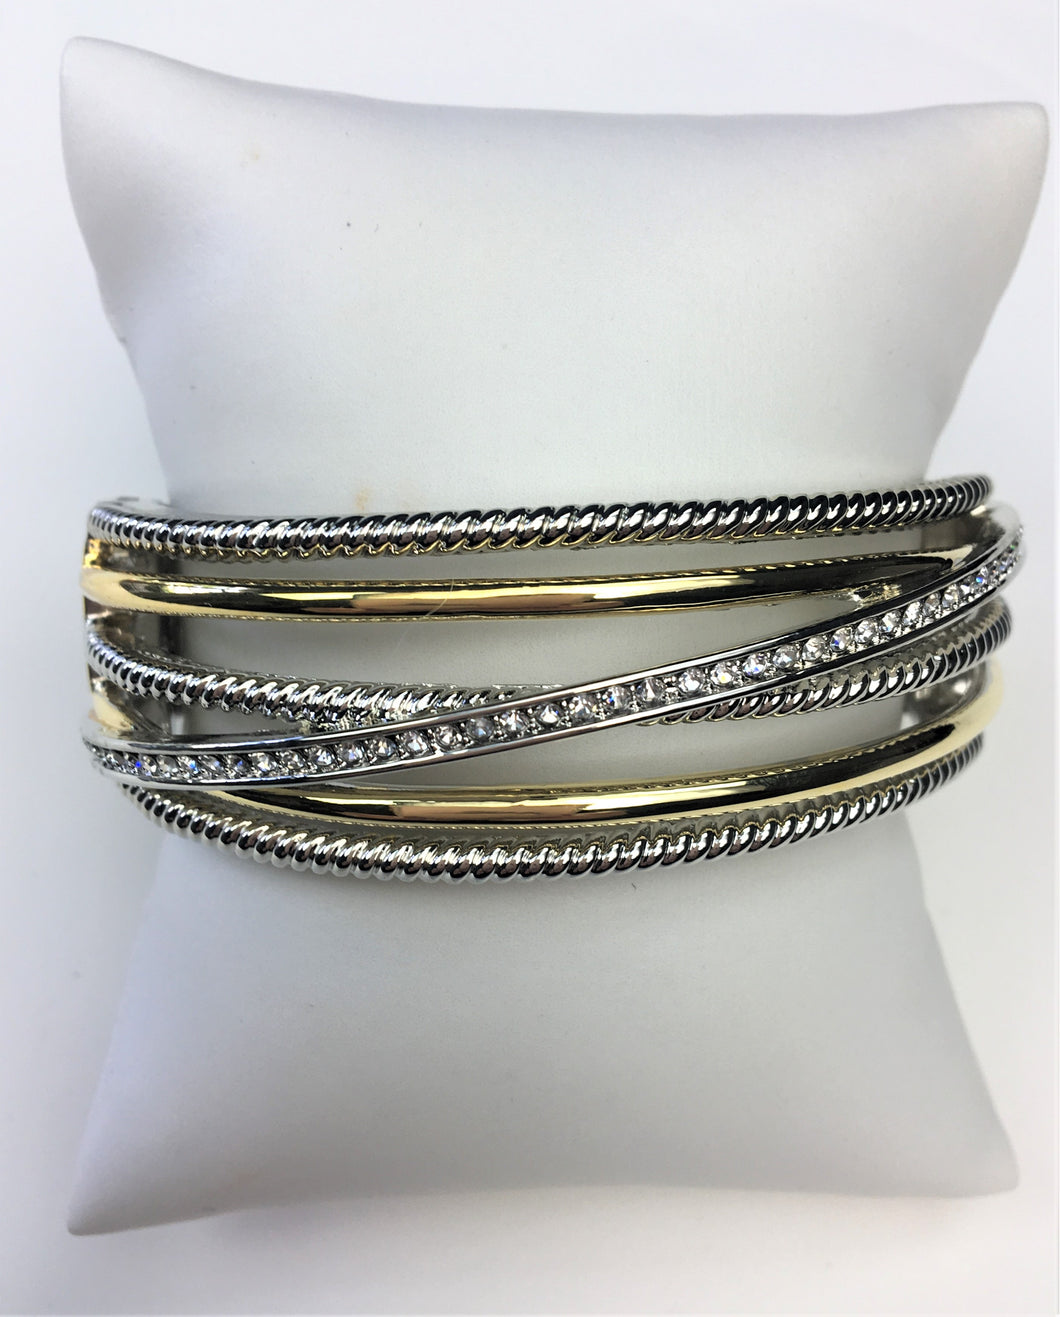 Yurman-Inspired Two-Tone Criss-Cross Bracelet